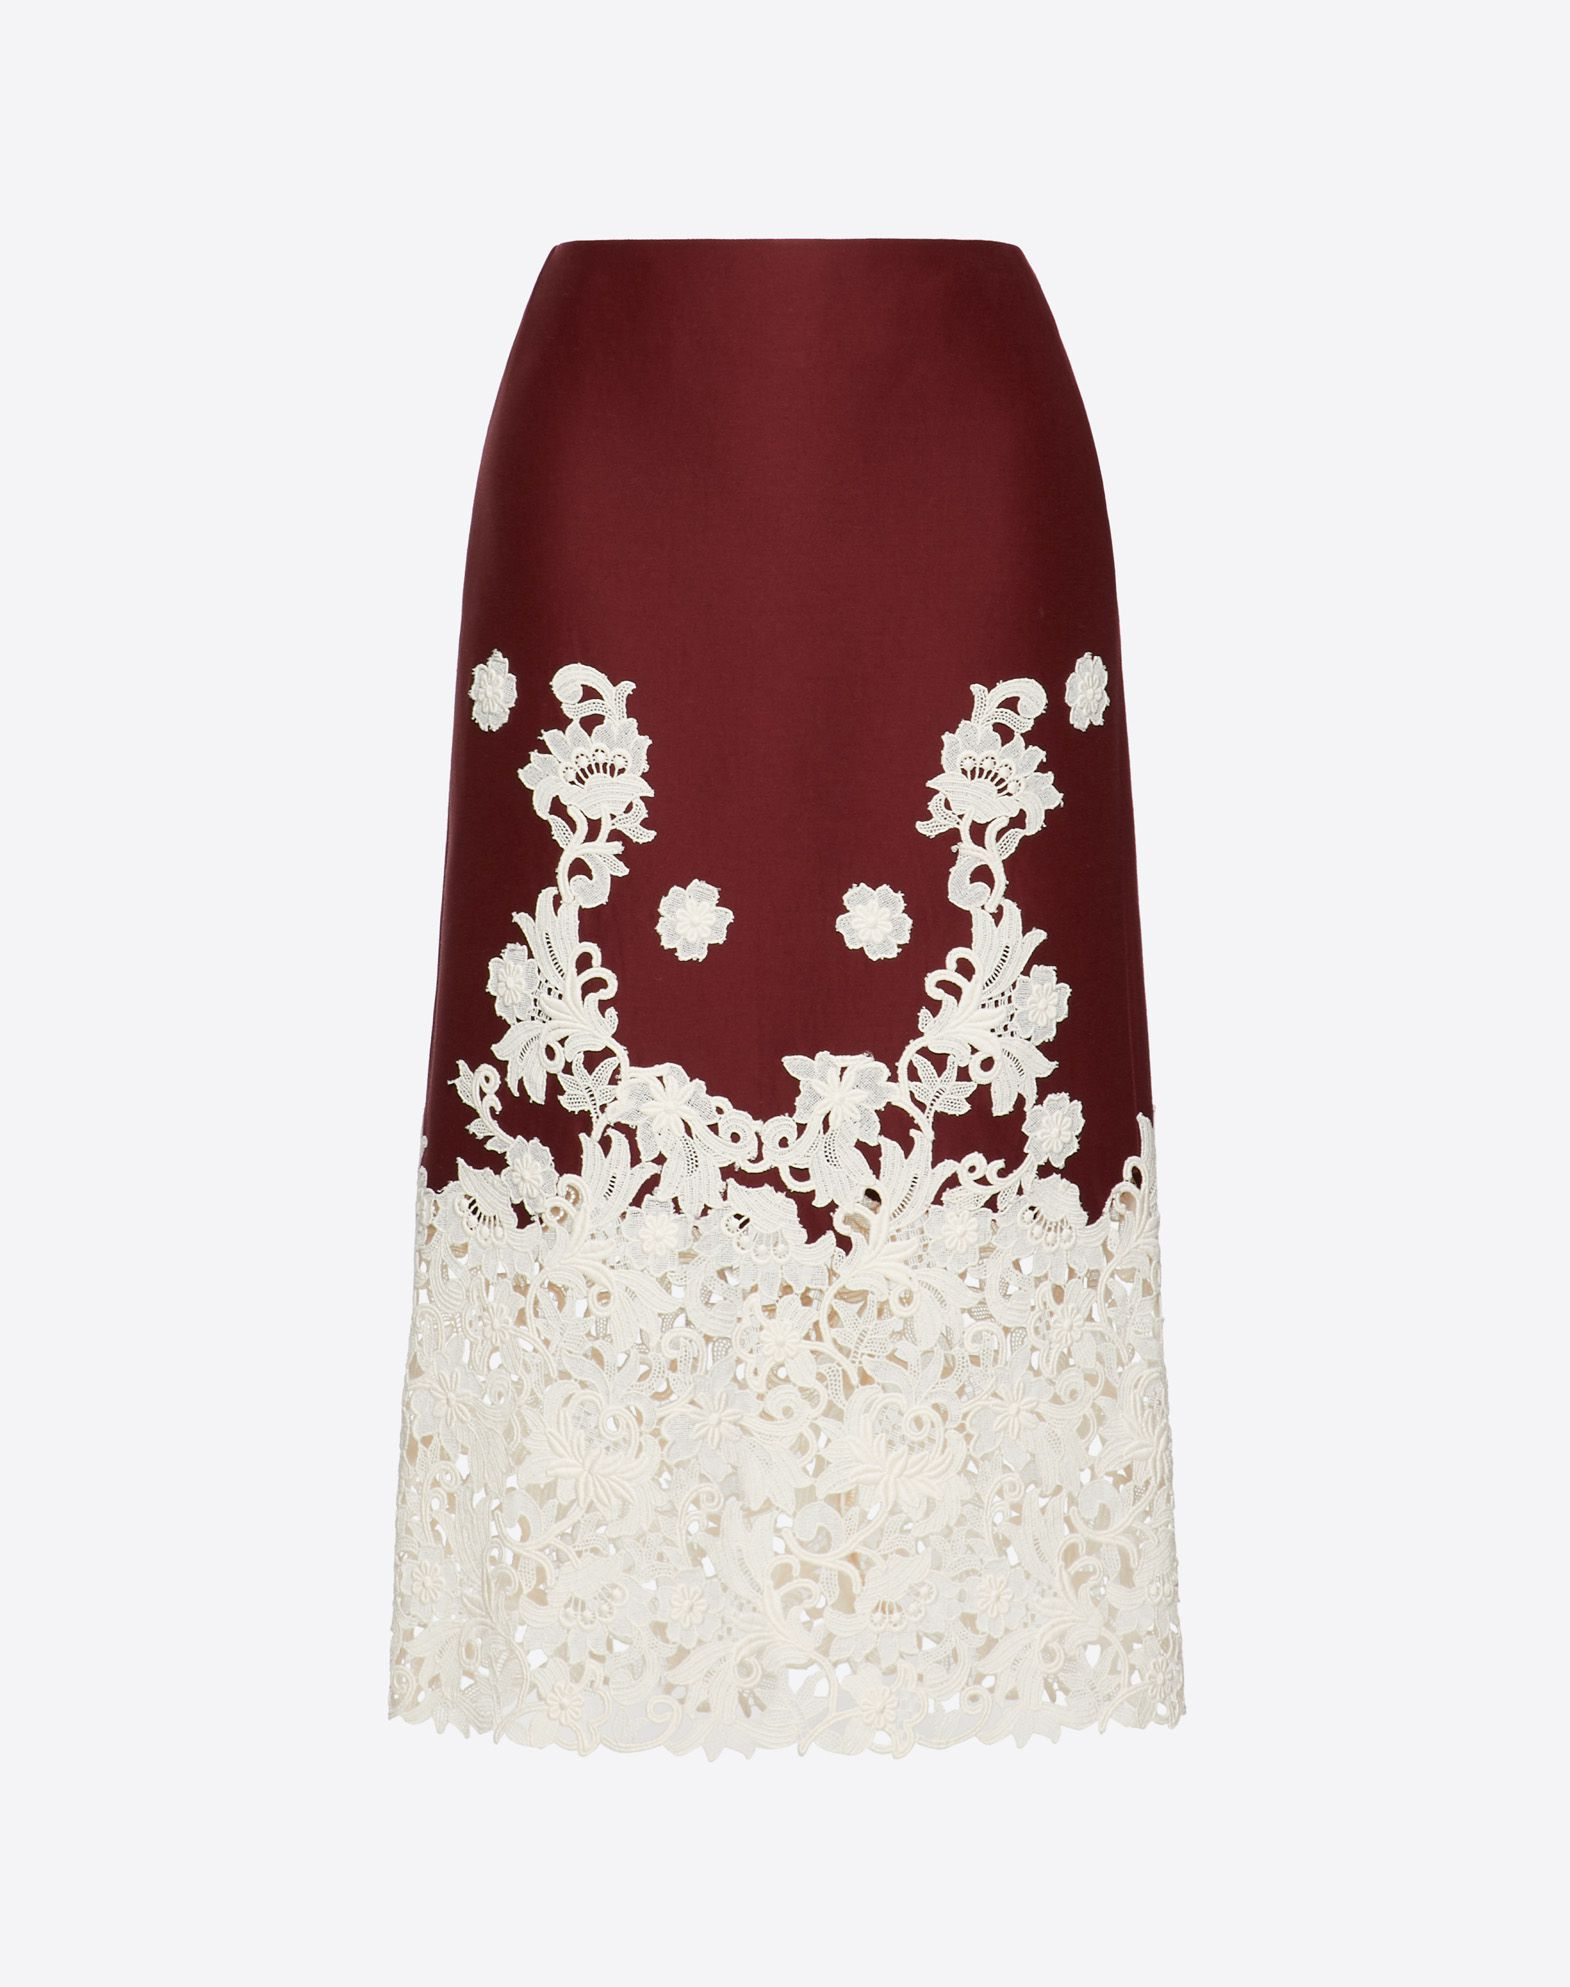 Crepe Couture and Macramé Inlay Skirt